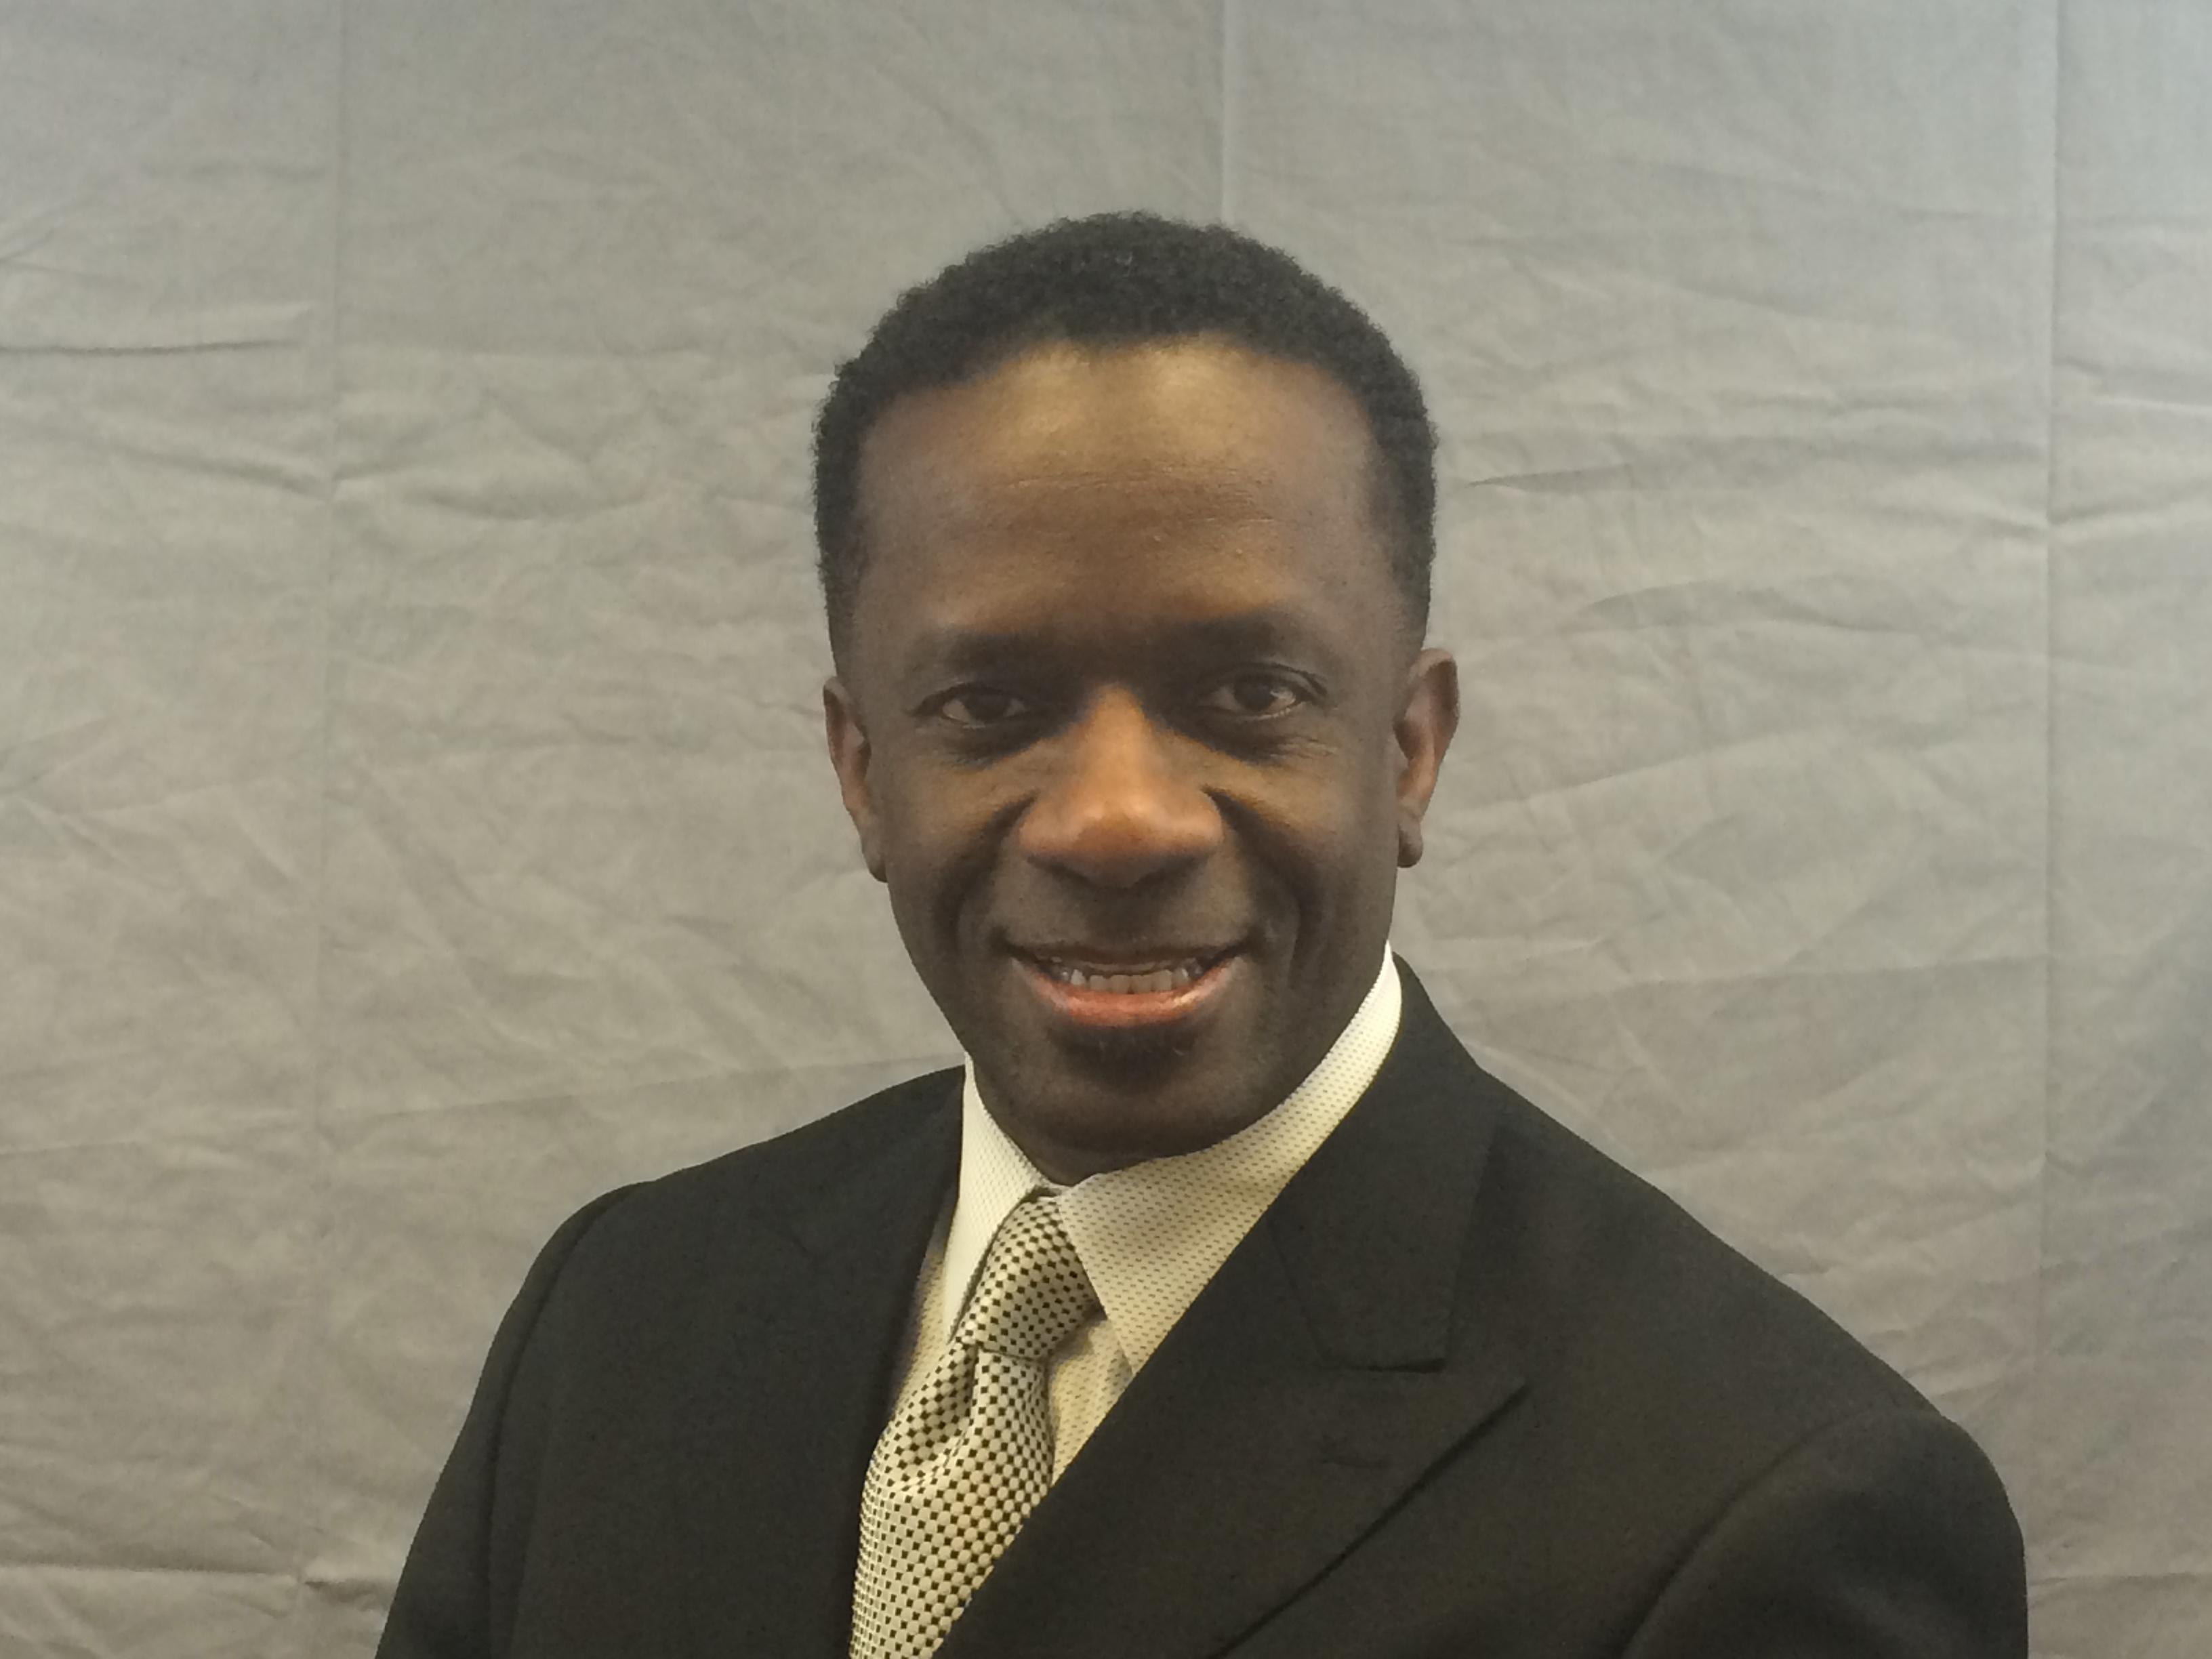 RONALD JACKSON Financial Professional & Insurance Agent